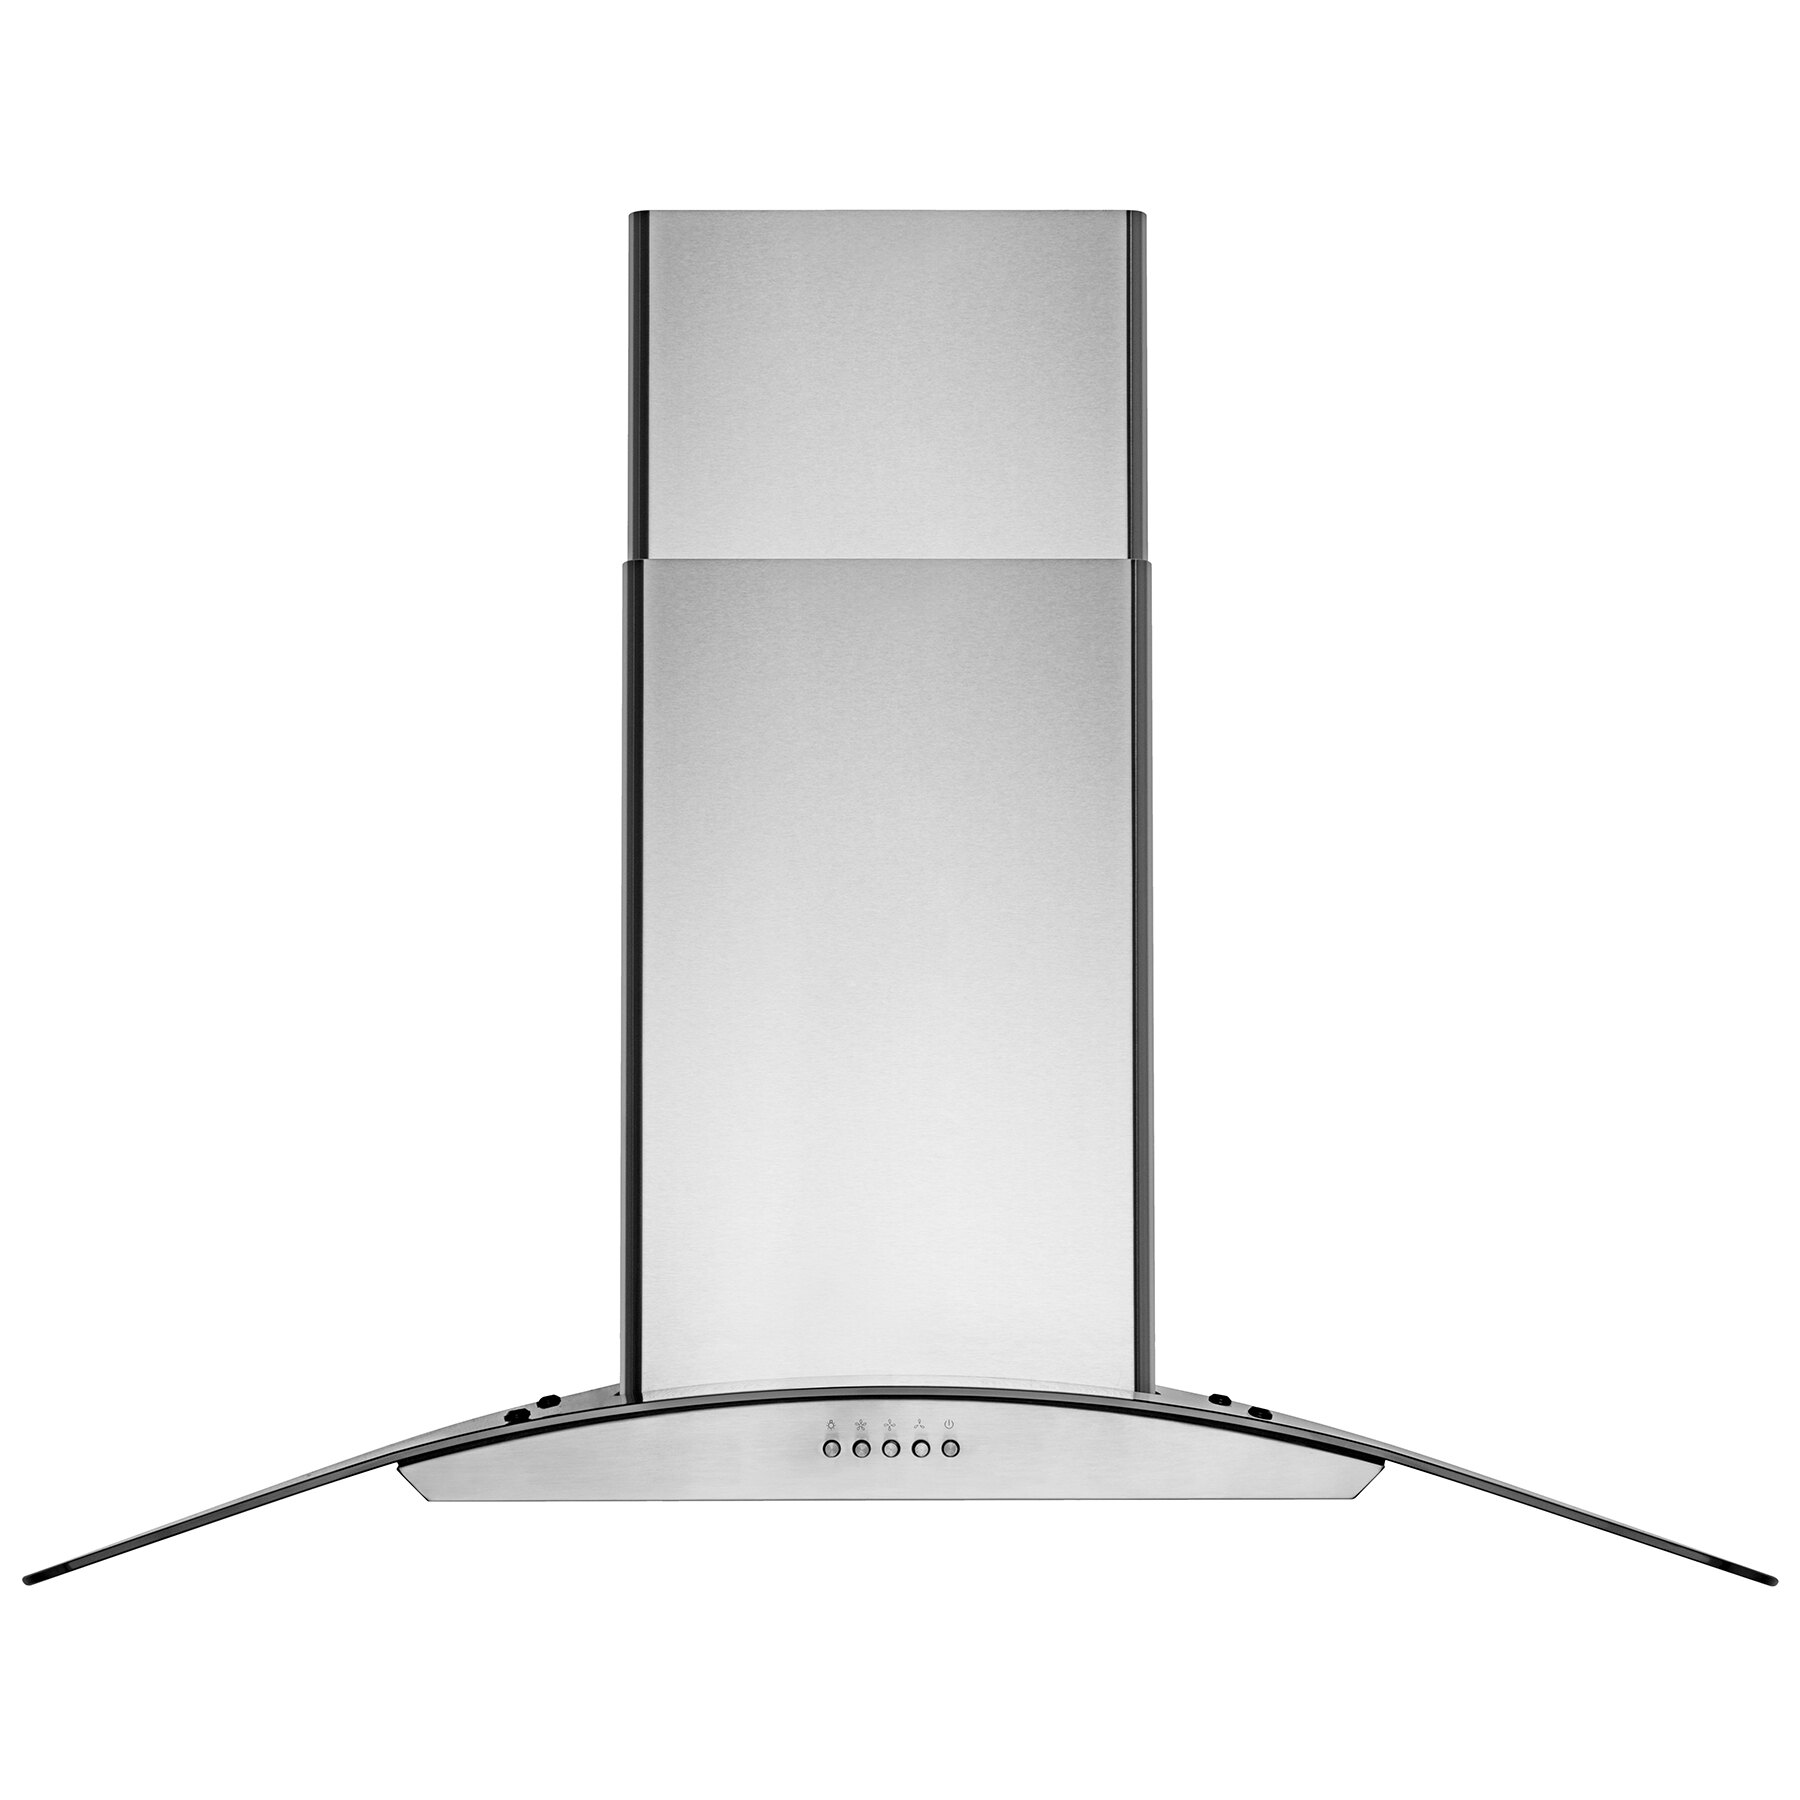 "AKDY 36"" Wall Mount Stainless Steel Tempered Glass Push Panel Kitchen Range Hood Cooking Fan 2"